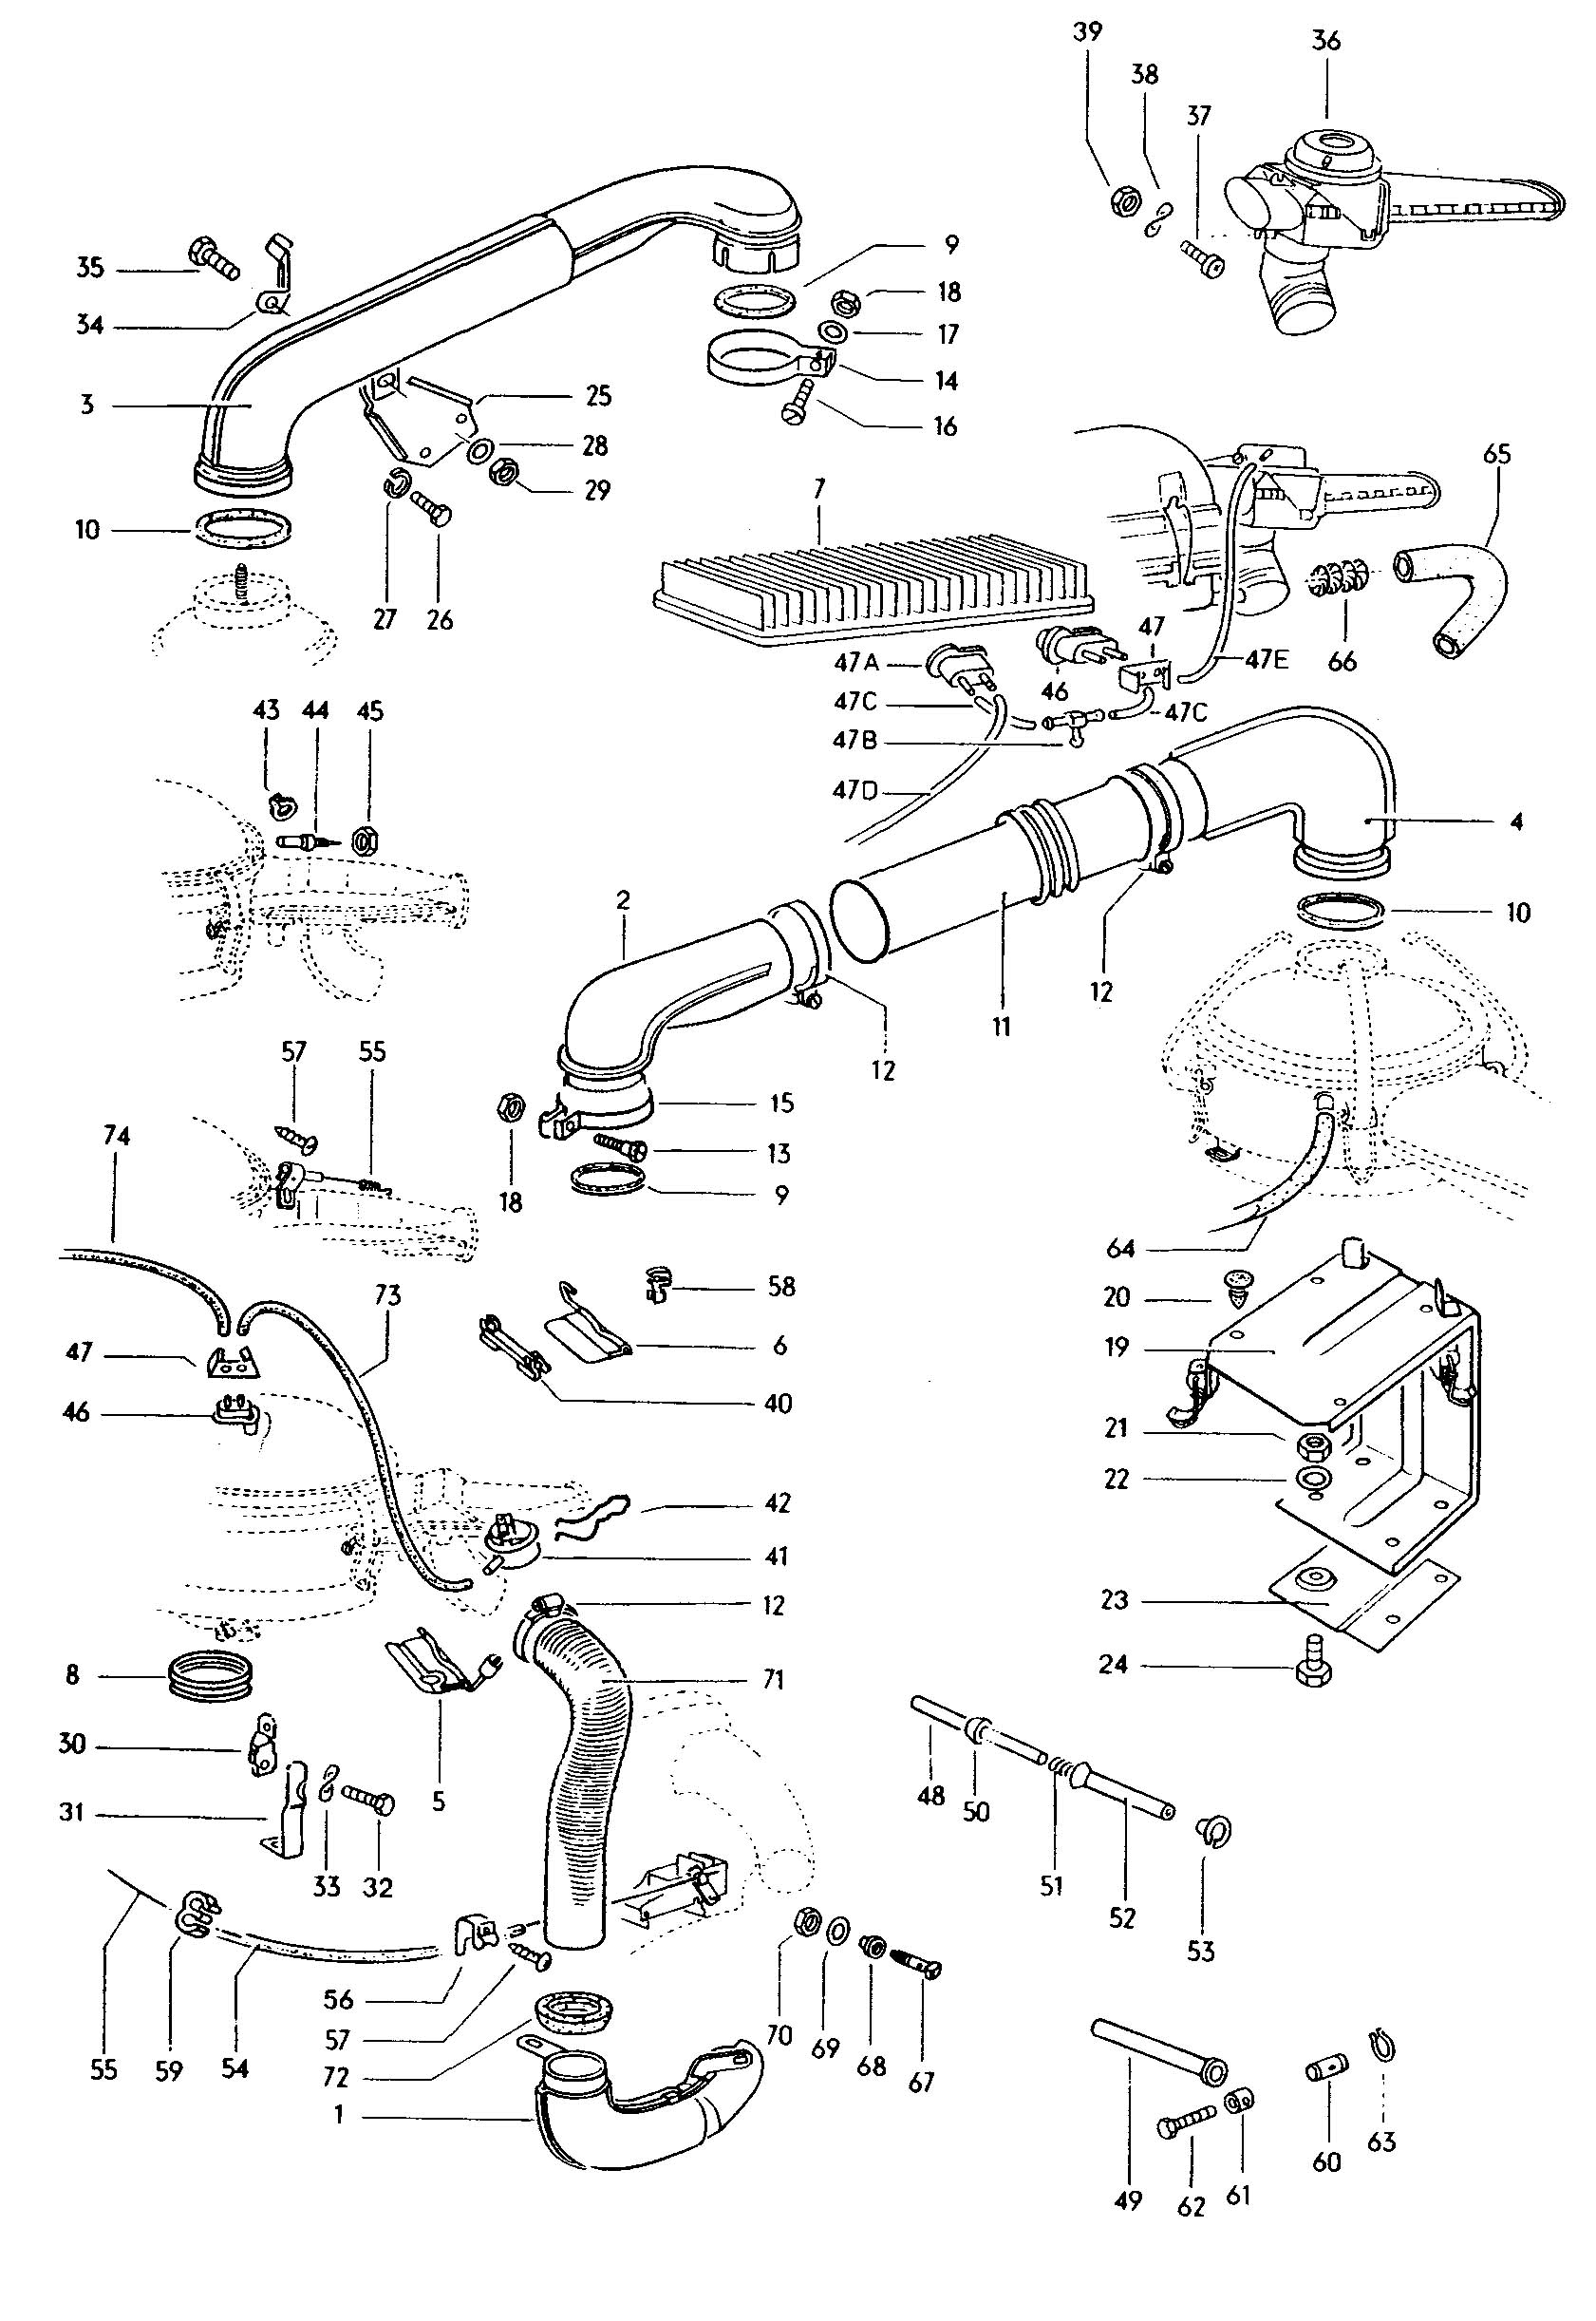 kyosho field baja beetle parts exploded view images - frompo vw bug engine parts diagram